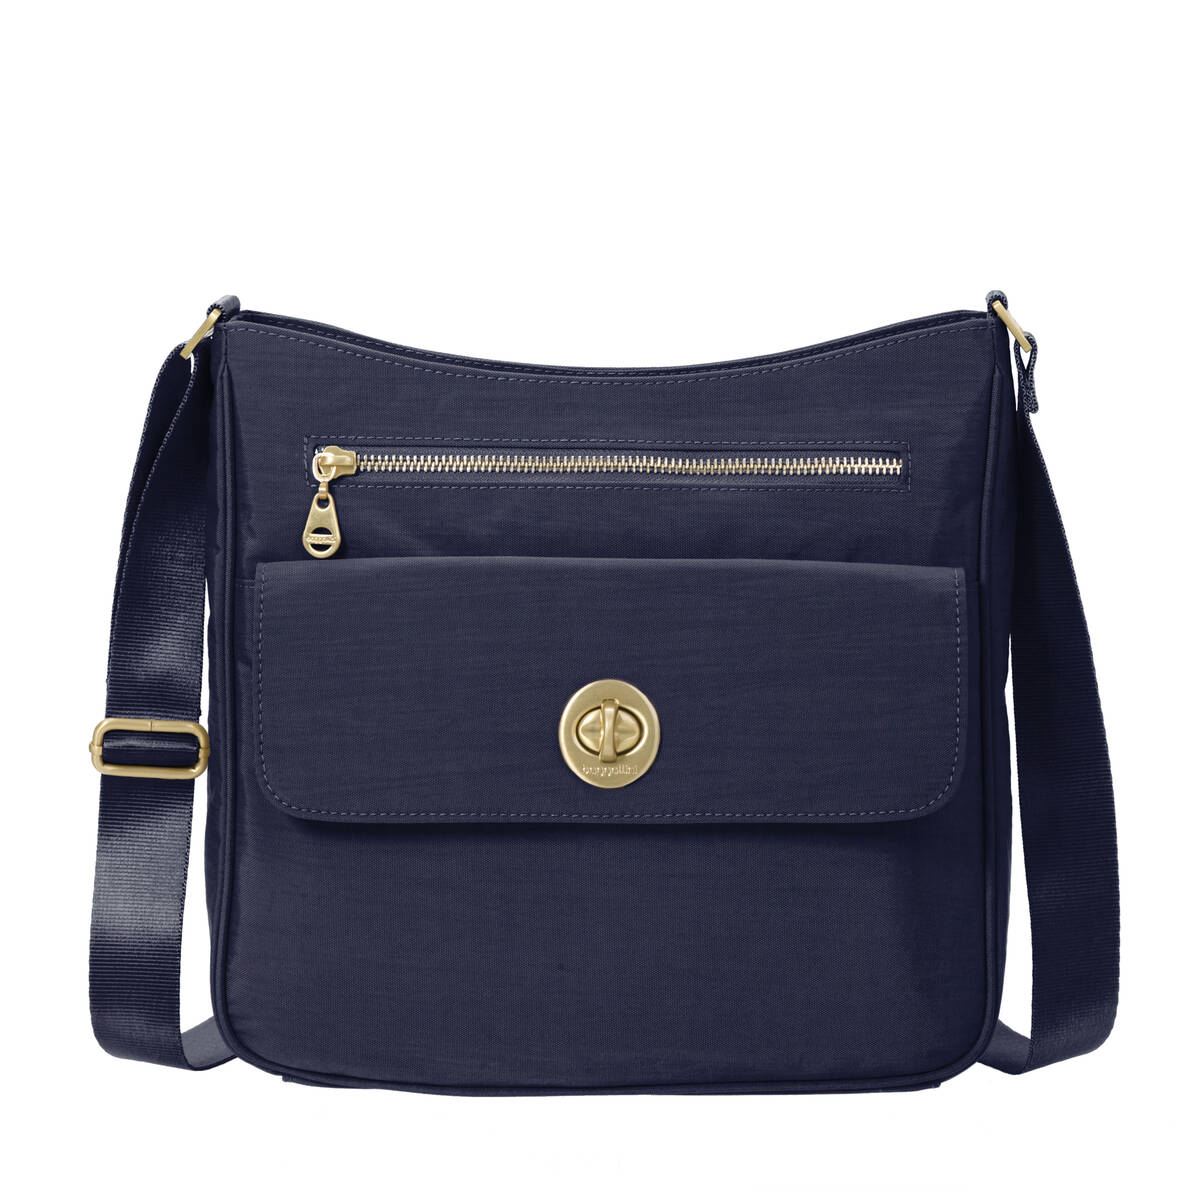 Antalya Top Zip Flap Crossbody Bag